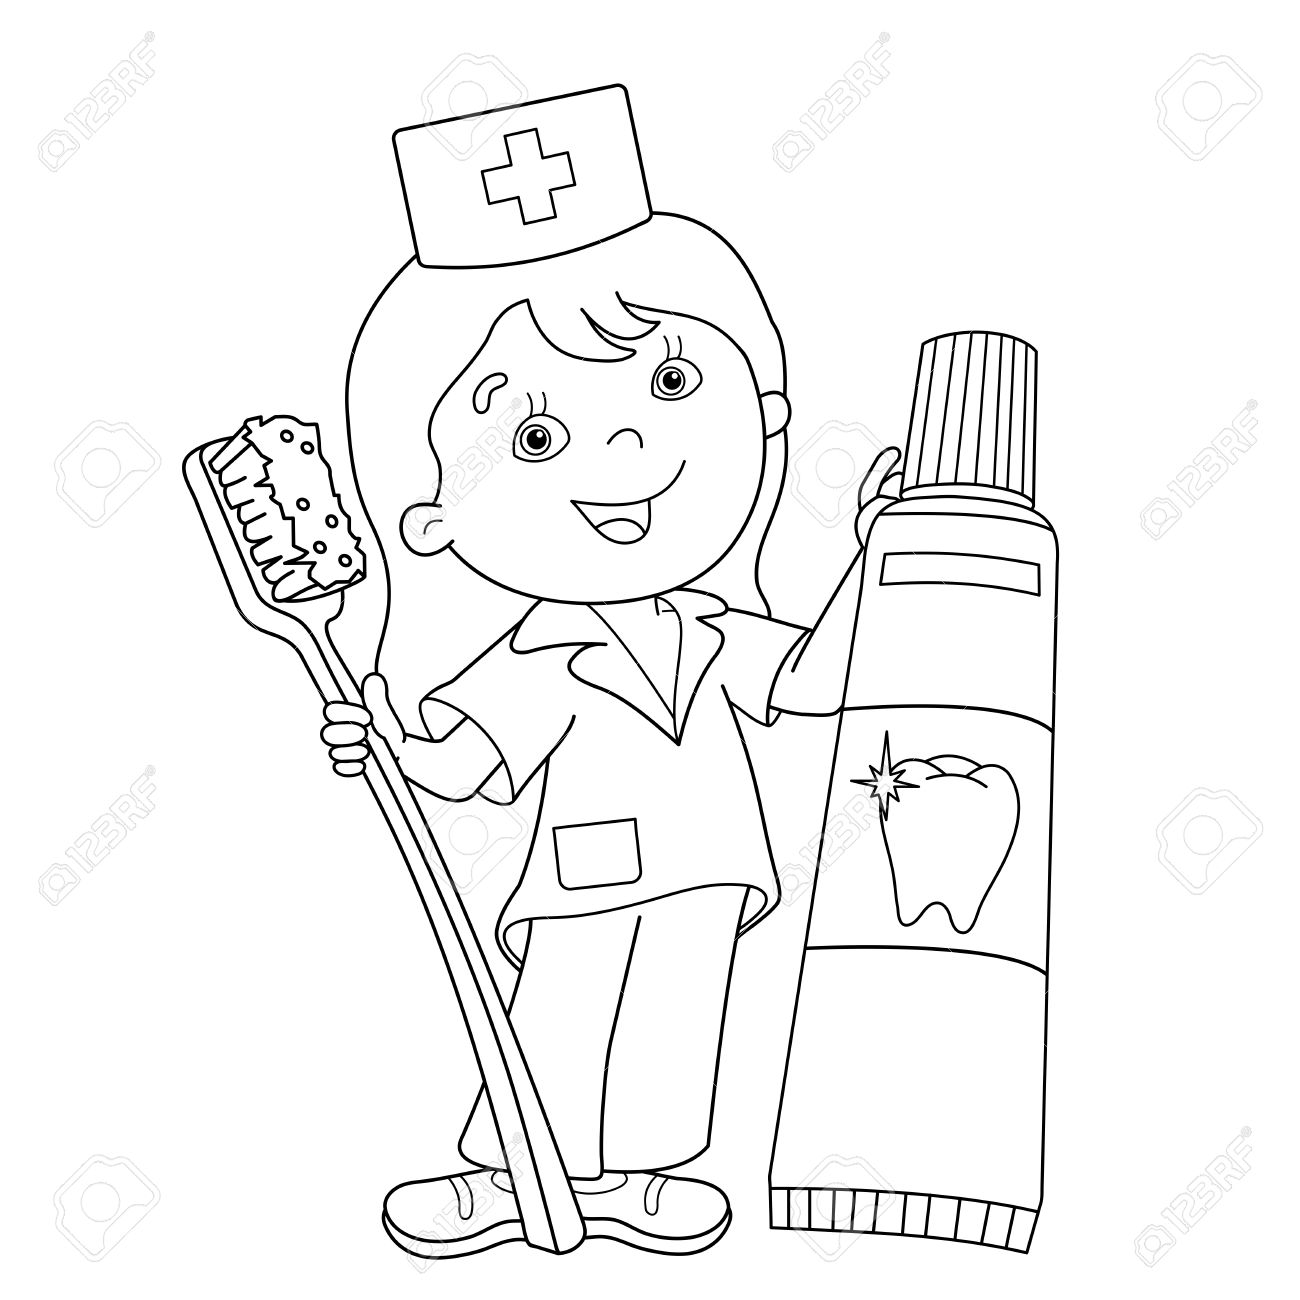 Coloring Page Outline Of Cartoon Doctor With Toothbrush And ...